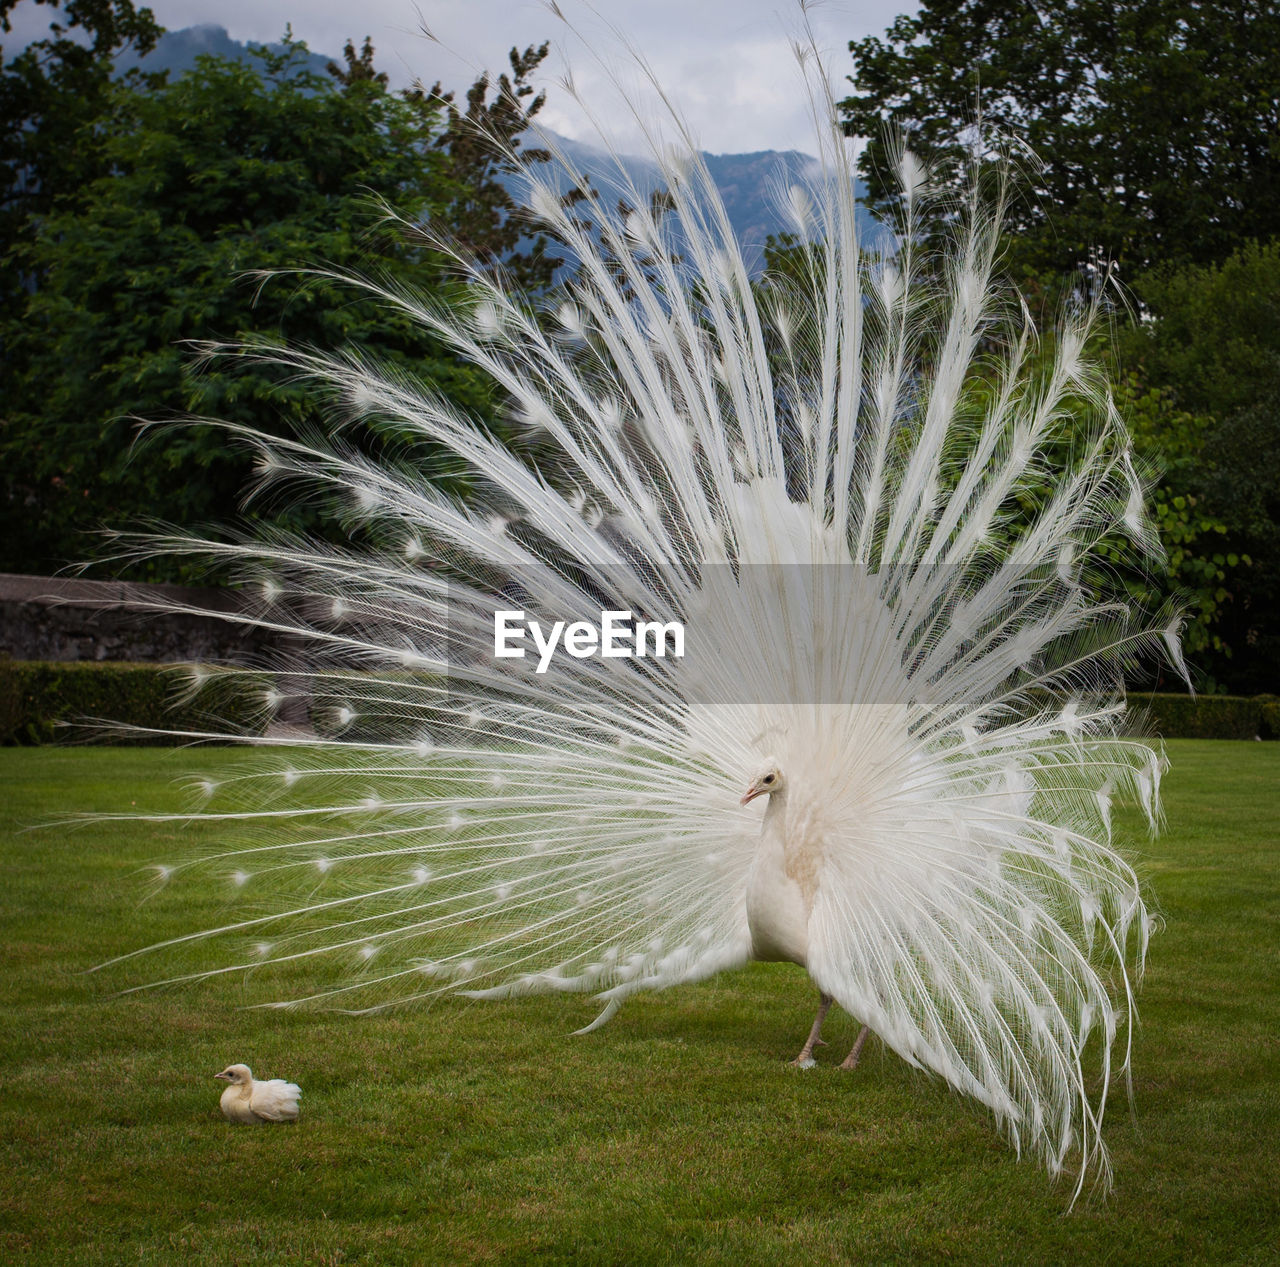 bird, animal, animal themes, vertebrate, plant, peacock, feather, grass, animal wildlife, nature, animals in the wild, fanned out, one animal, no people, day, peacock feather, beauty in nature, white color, outdoors, animal behavior